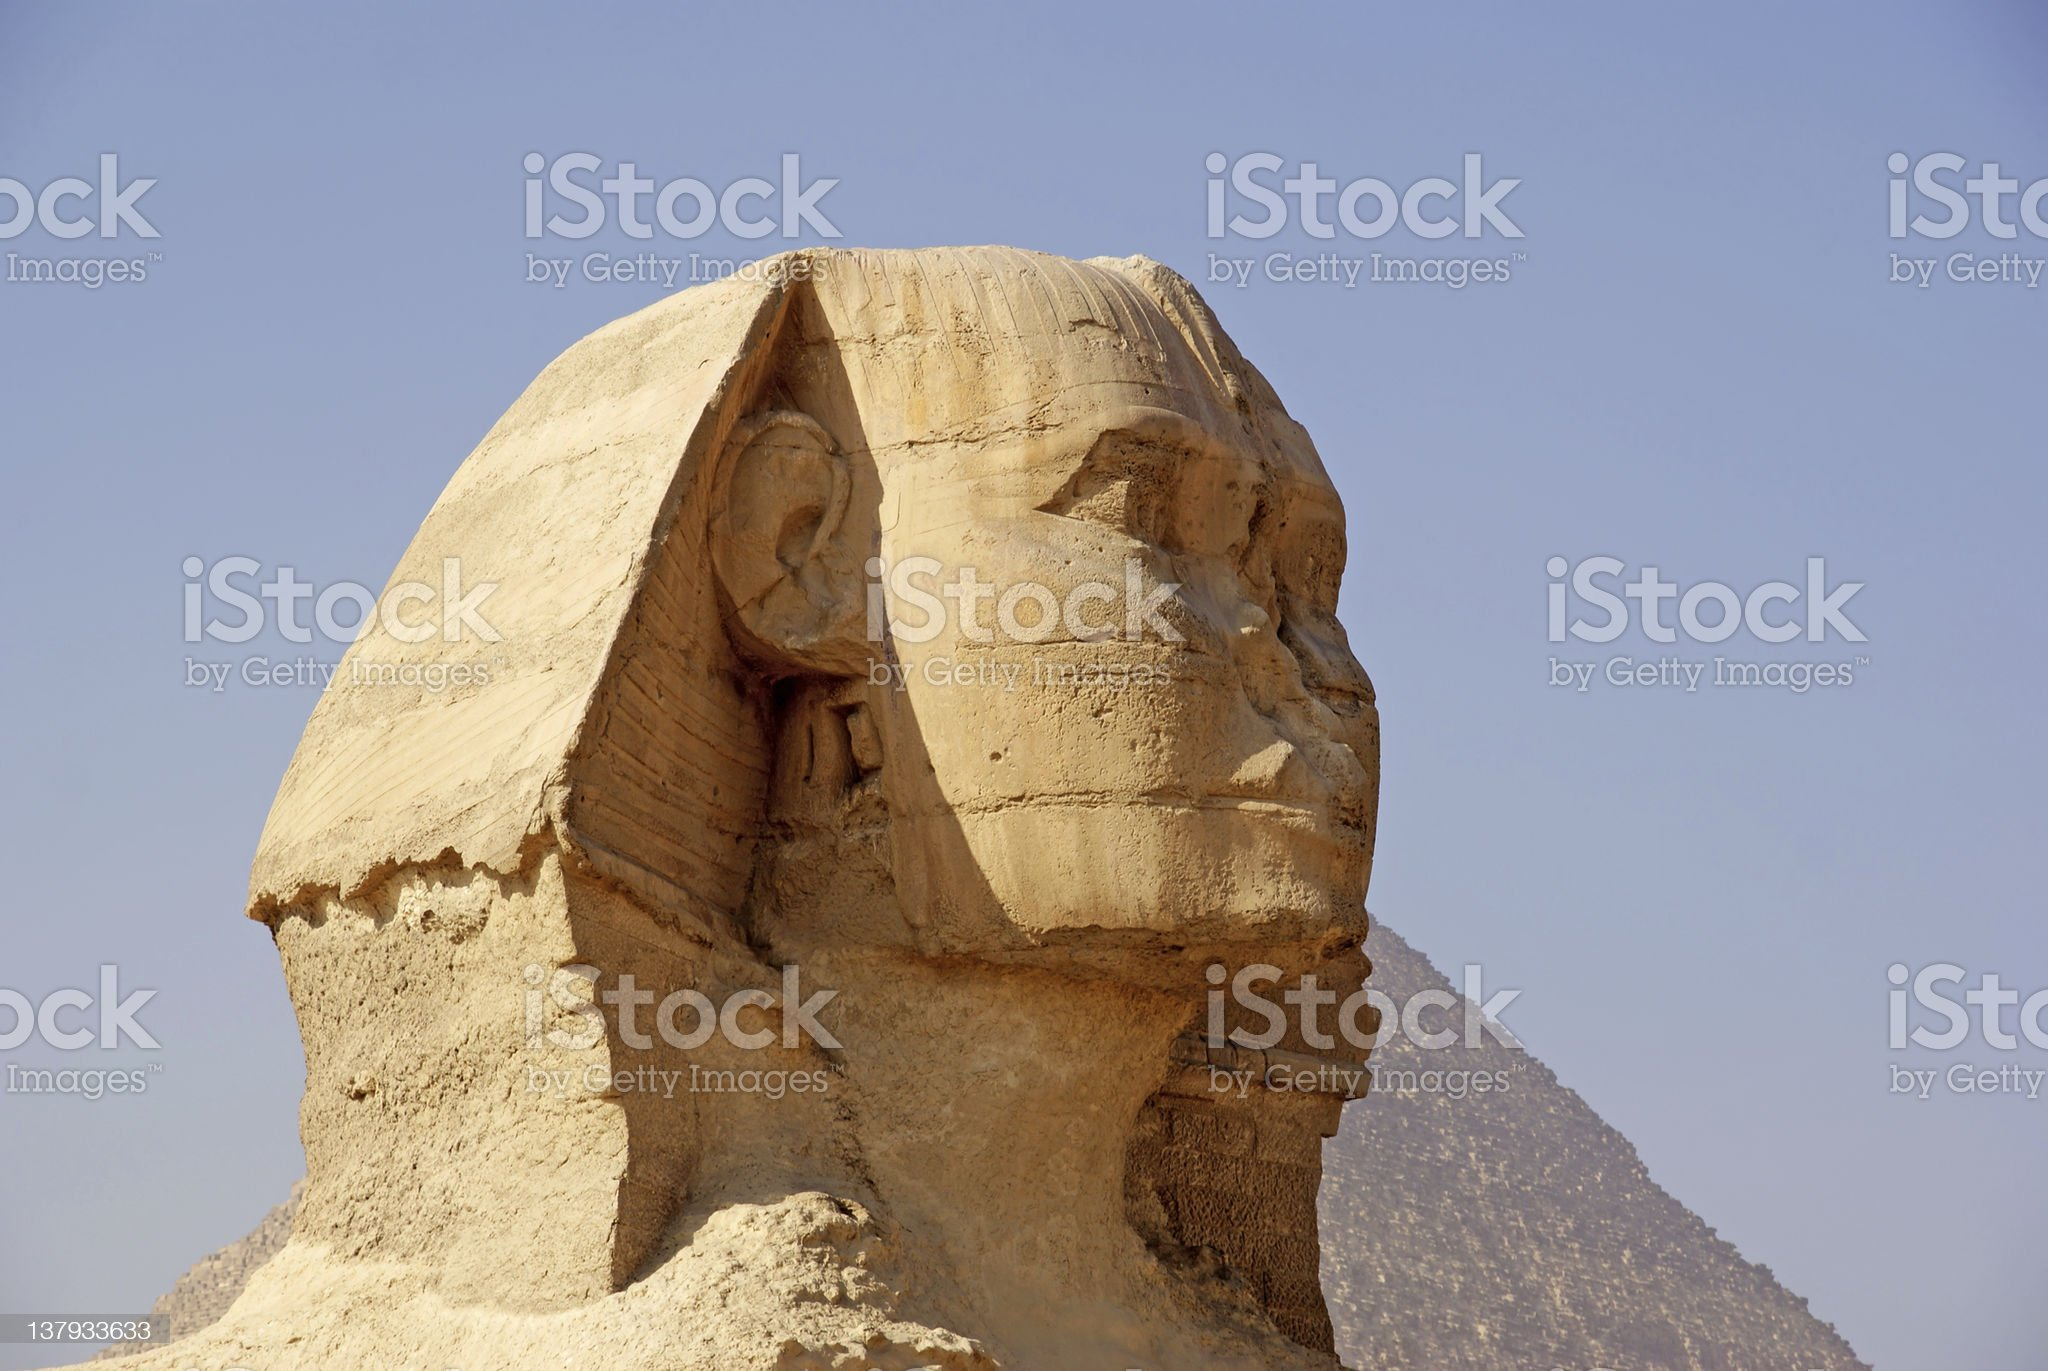 Great Sphinx (Giza), with Pyramid of Khafra in the background royalty-free stock photo